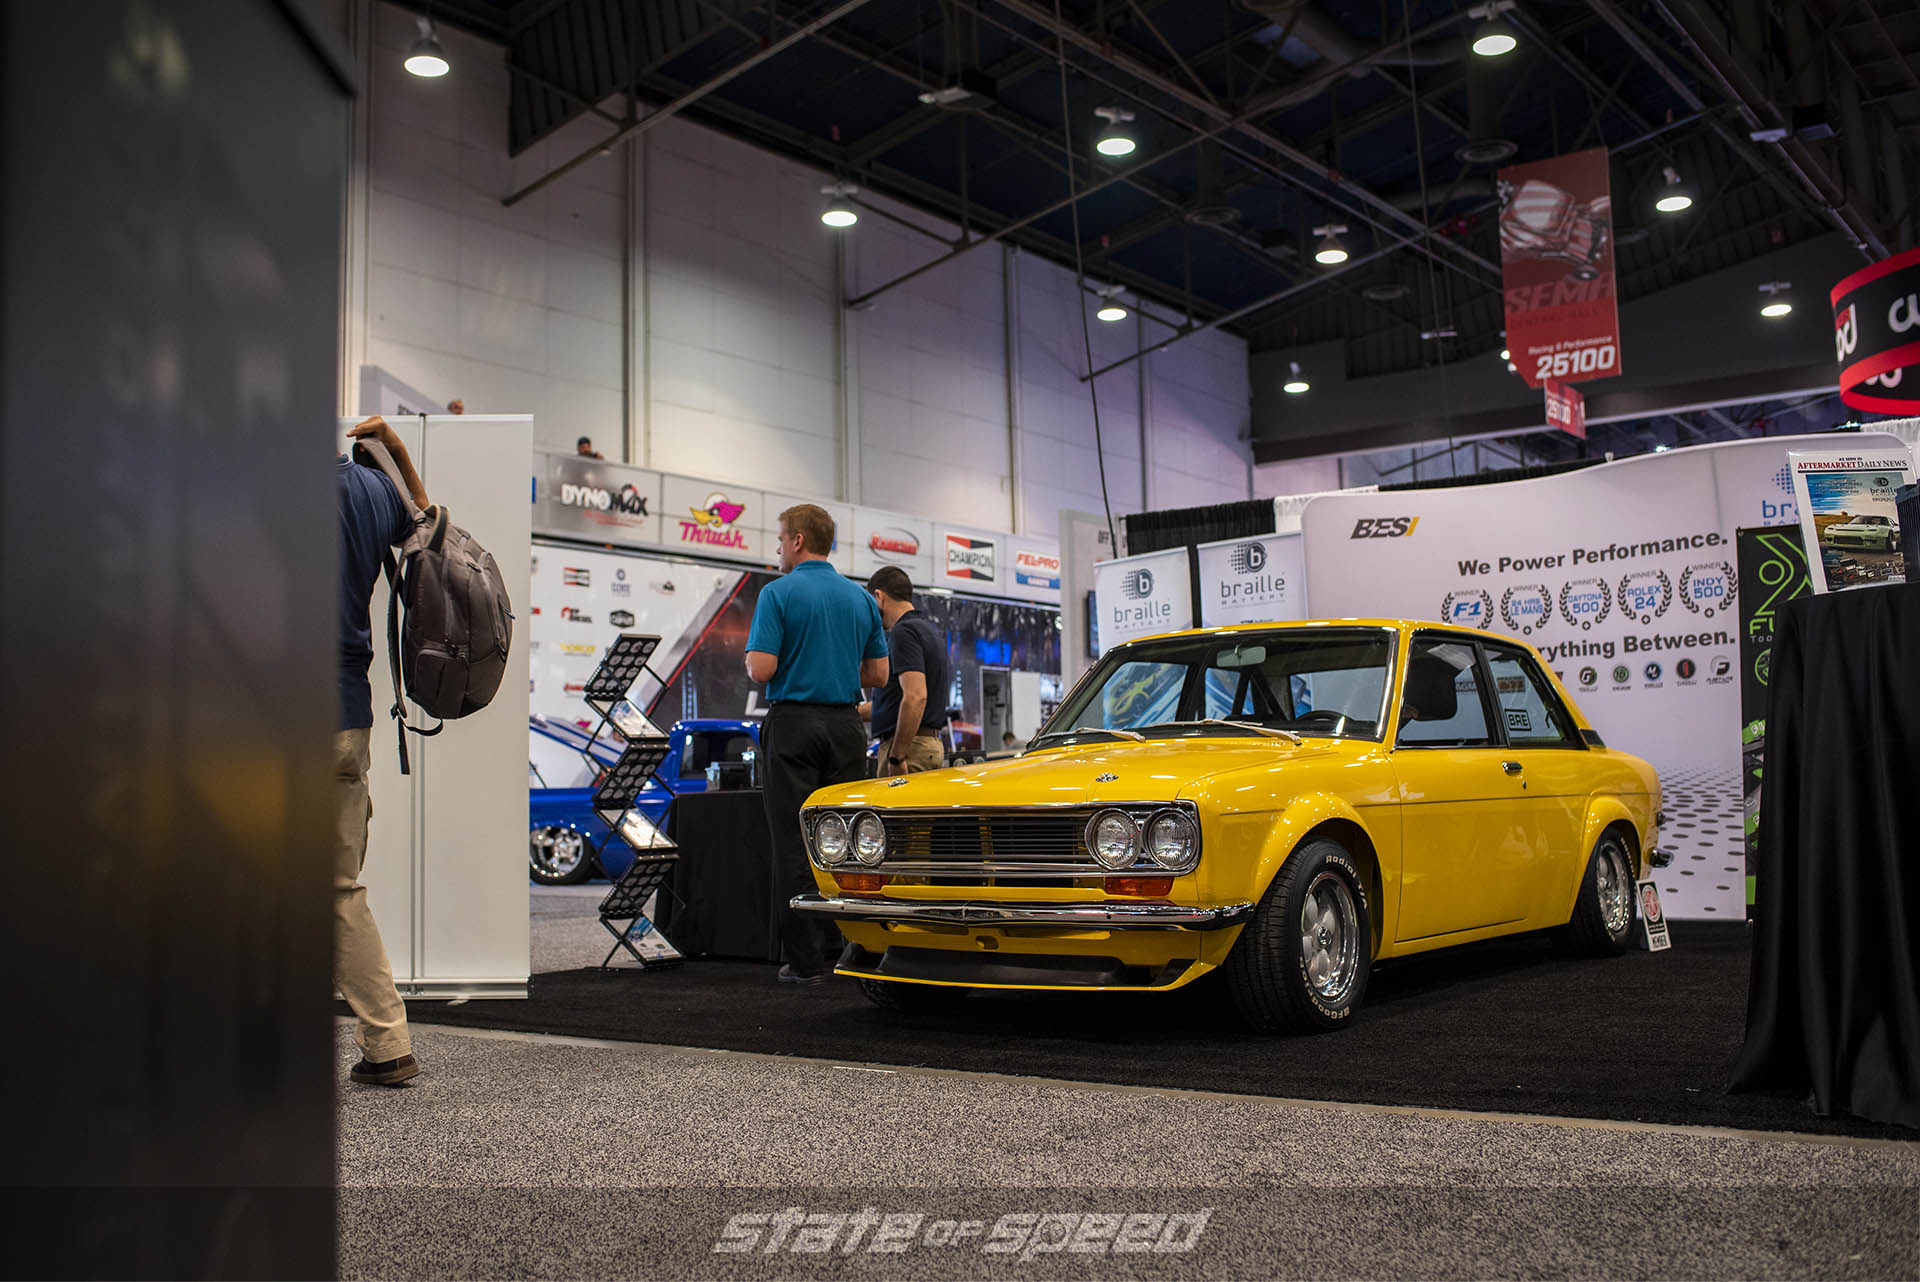 Datsun 510 at a booth during the show